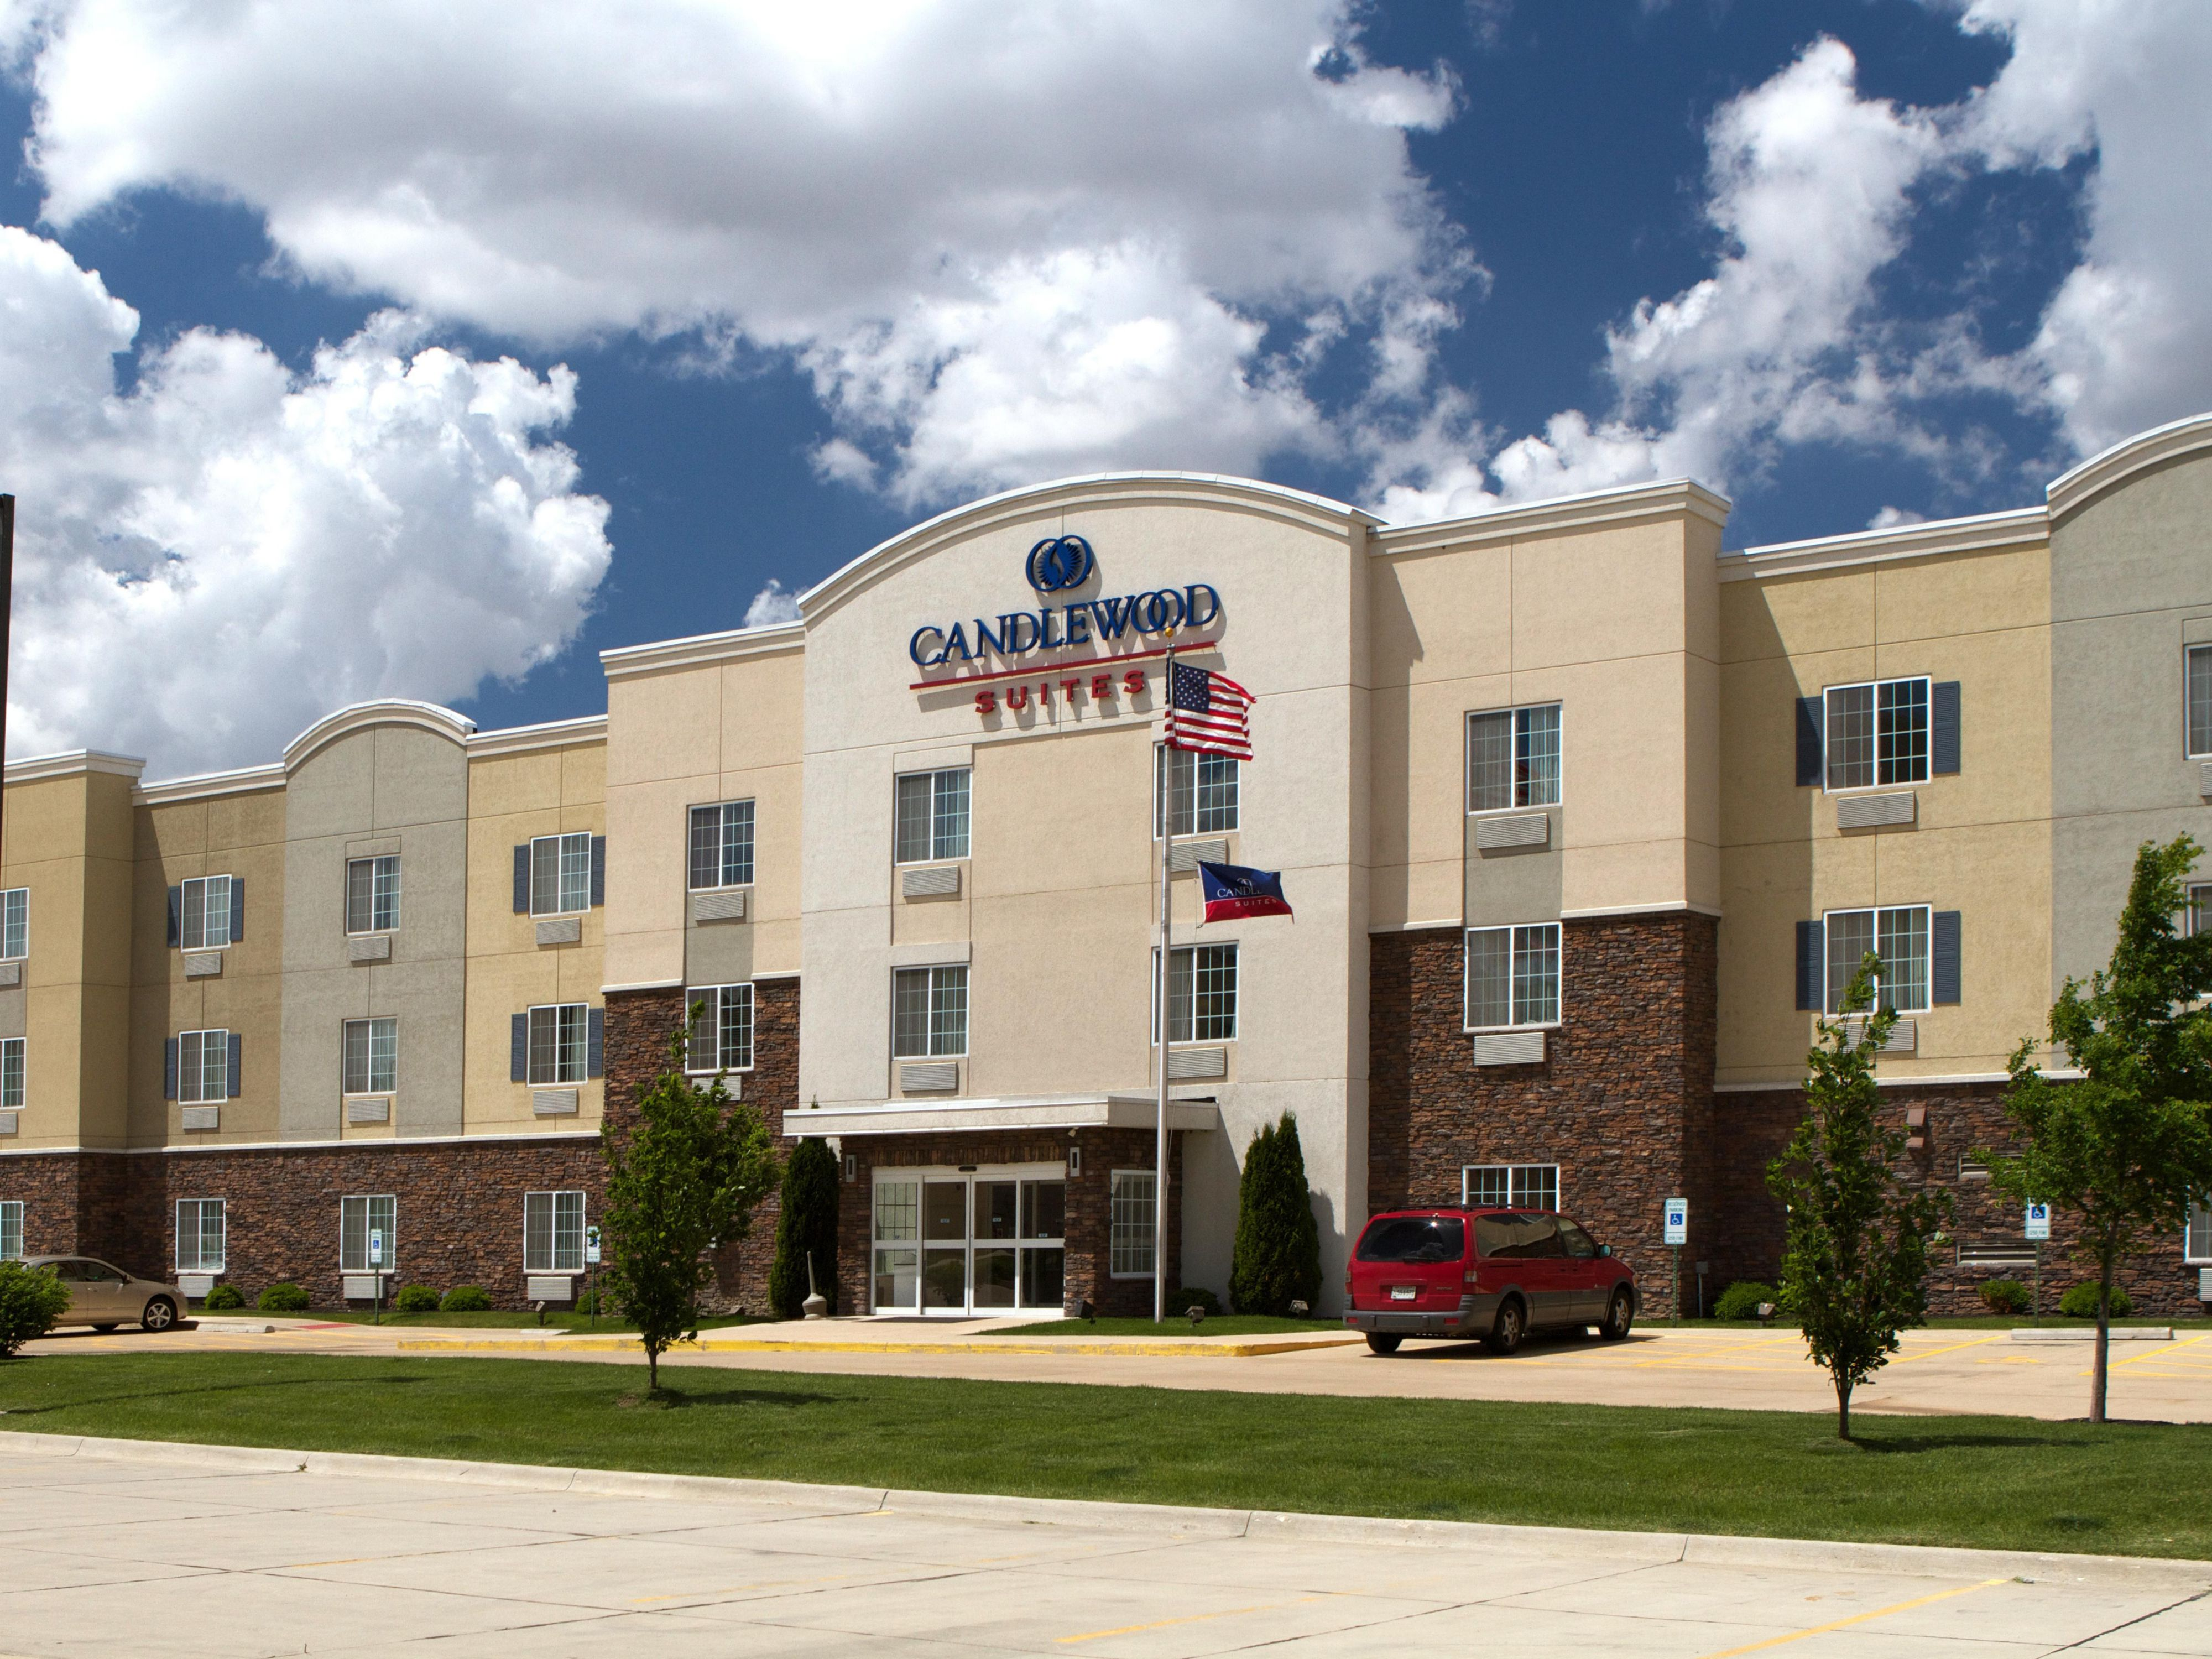 Candlewood Suites Champaign Urbana Univ Area Extended Stay Hotel In Illinois